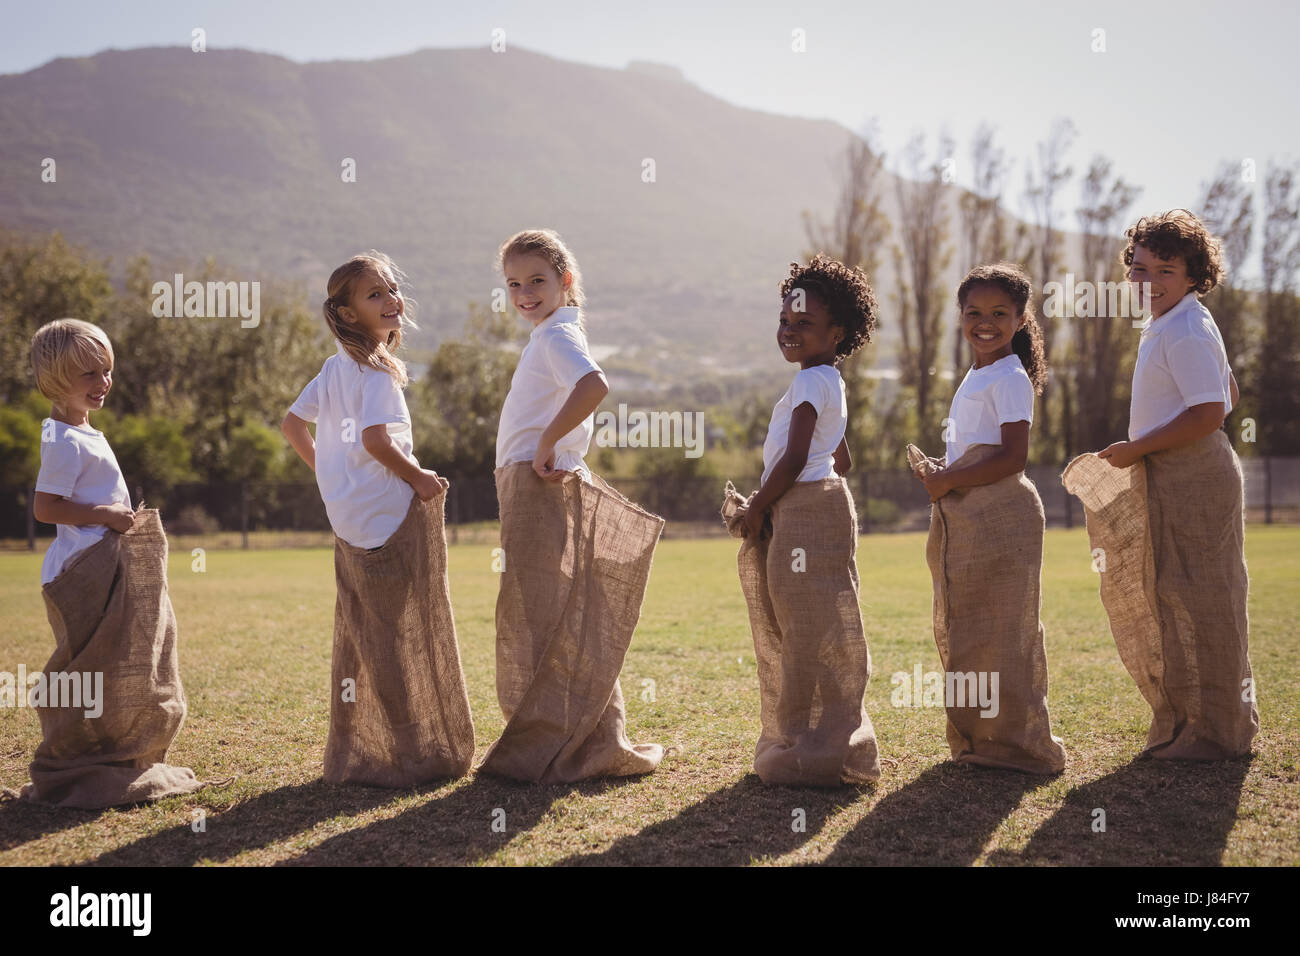 Schoolgirls having fun during sack race in park on a sunny day - Stock Image